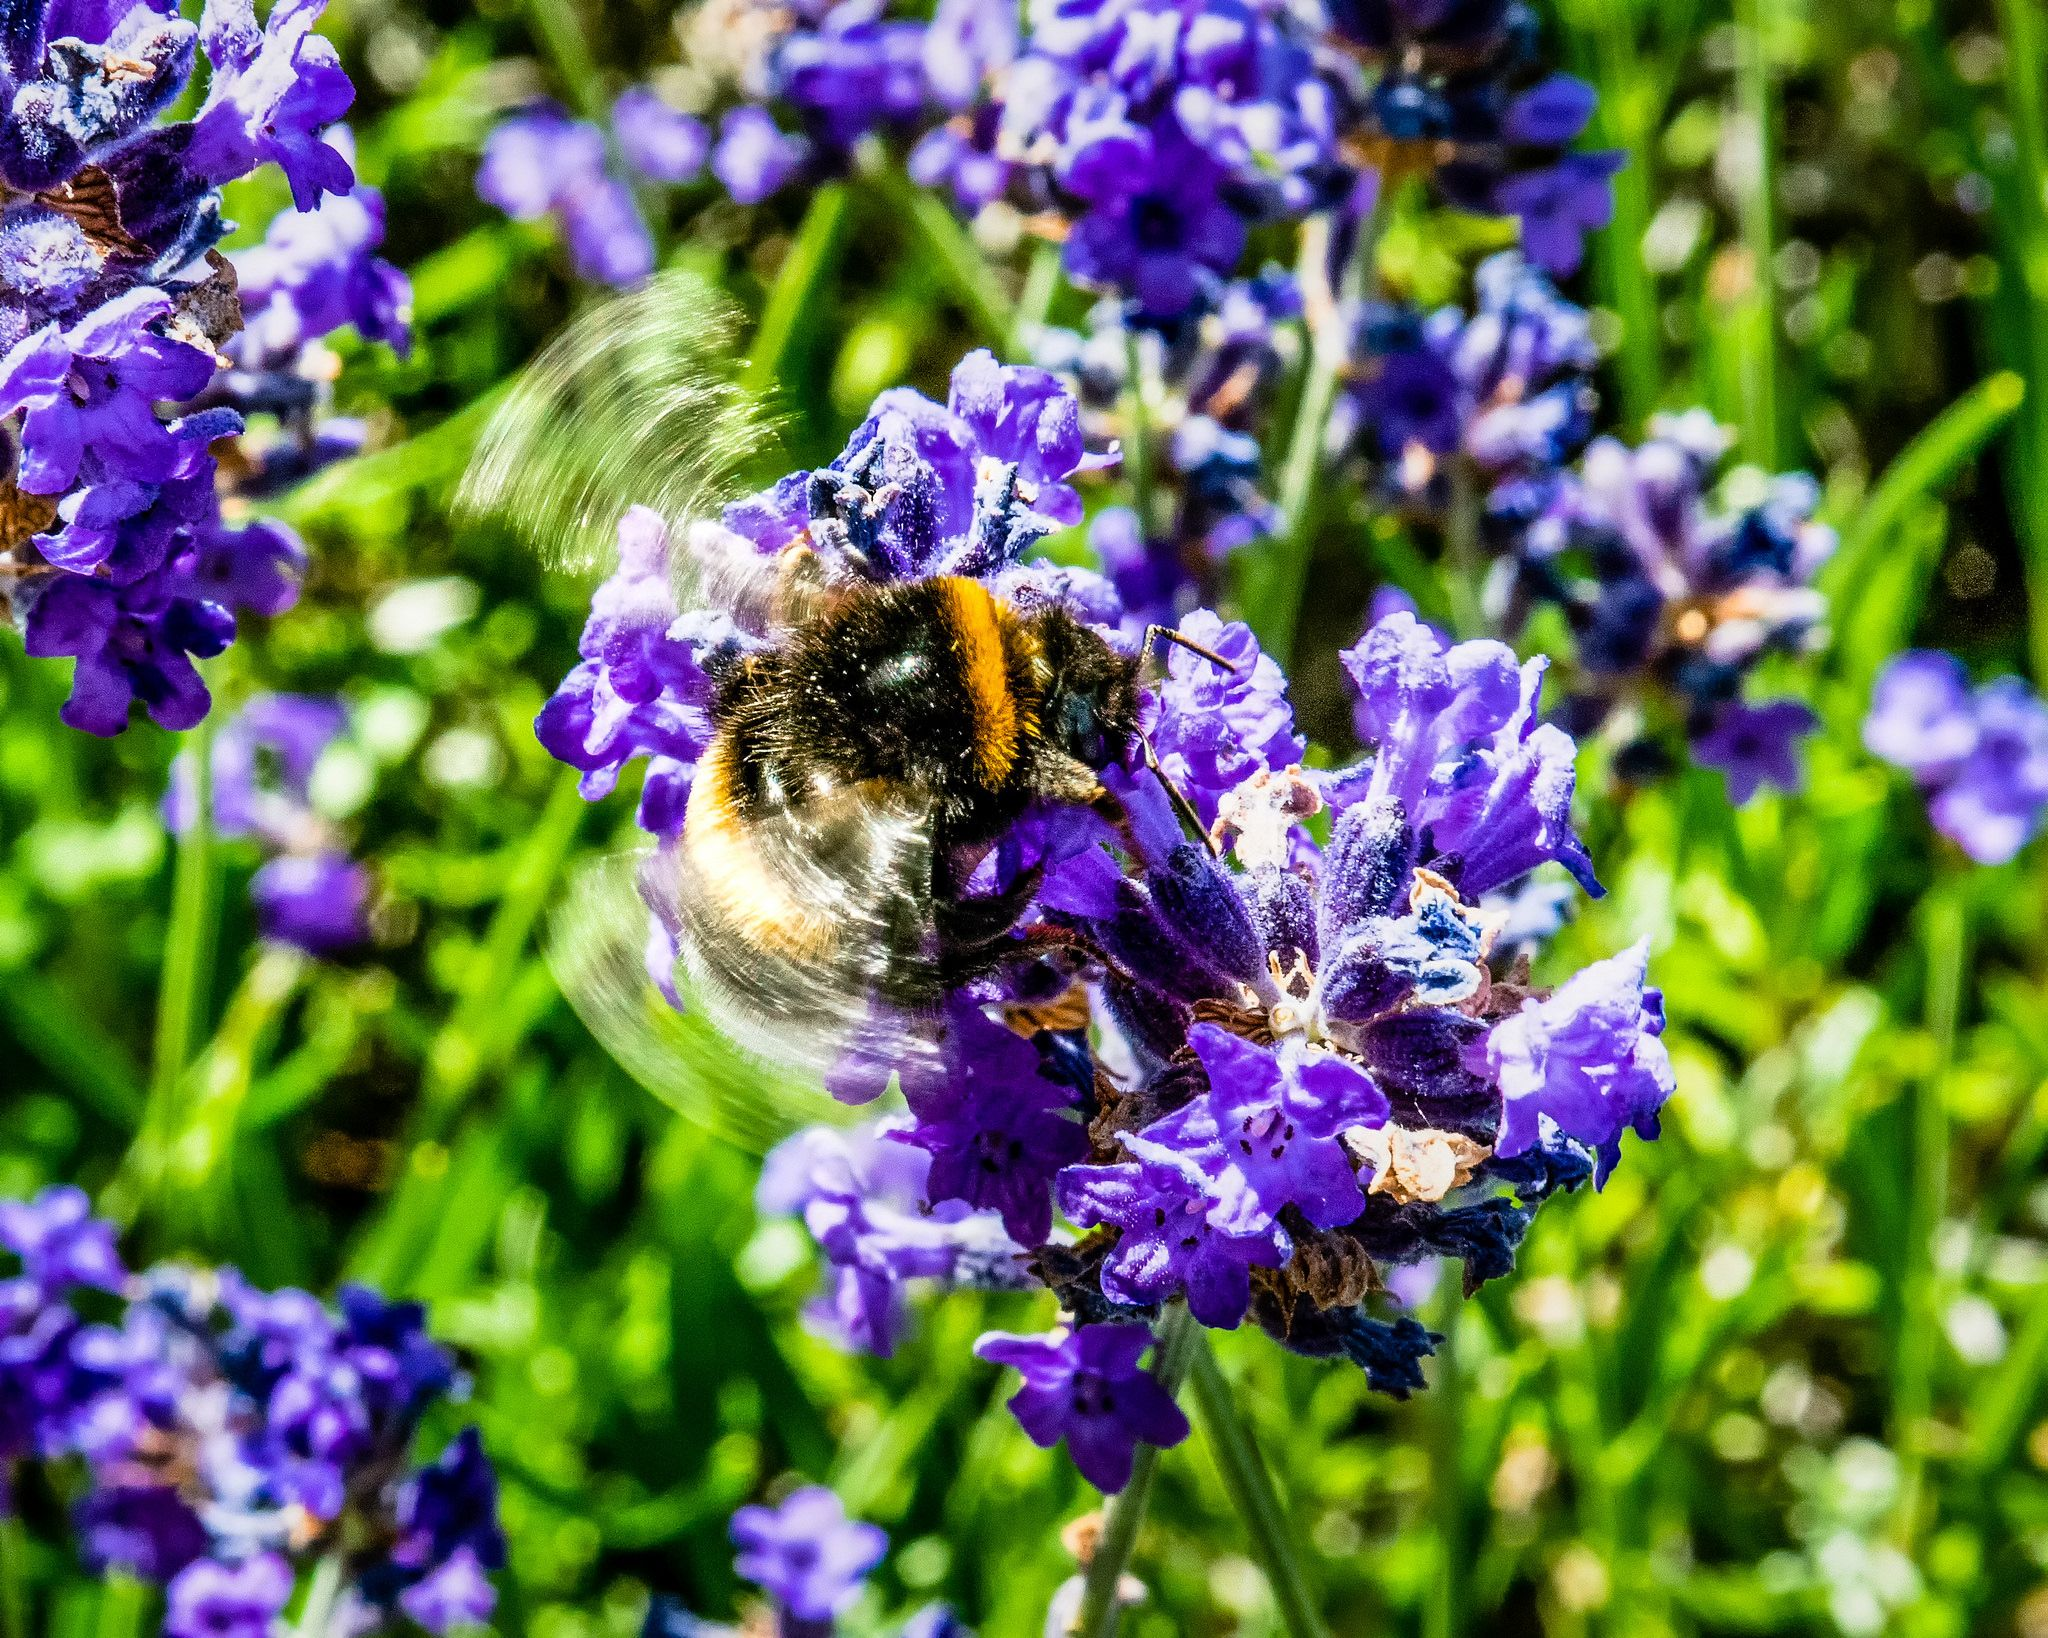 Bumblebee taking off | Lavender flowers, Bumble bee, Photo